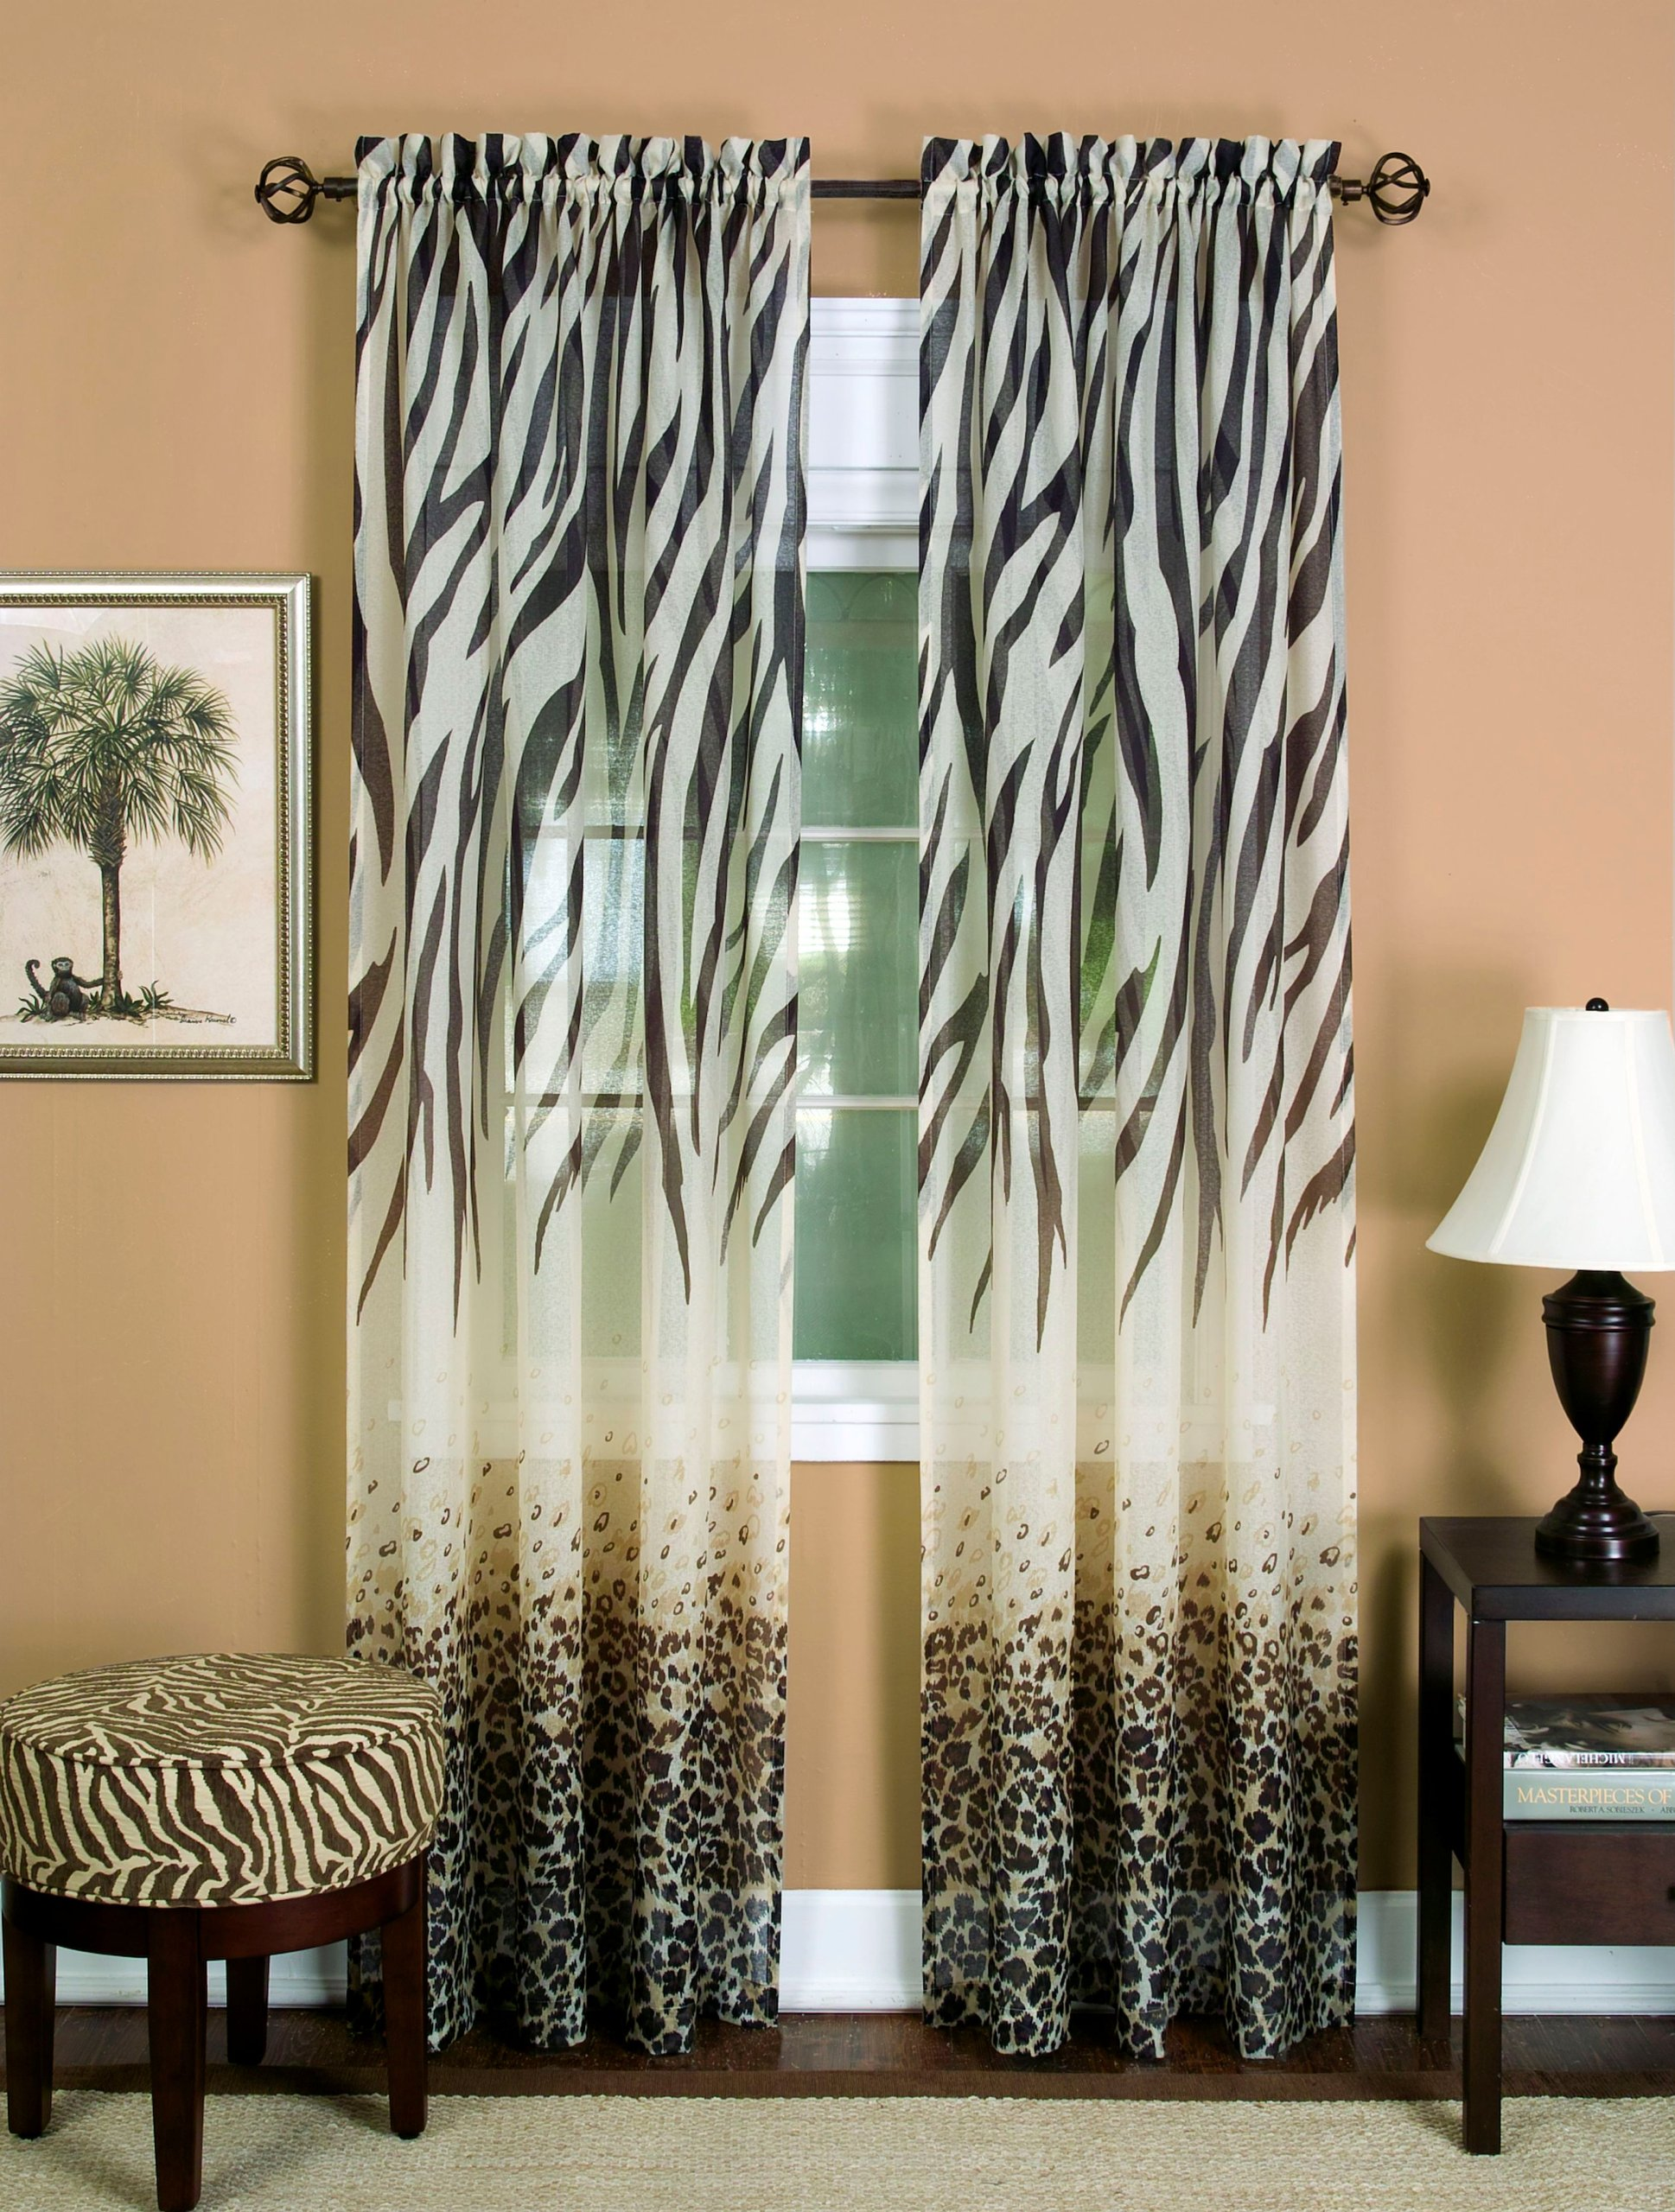 Achim Home Furnishings KNPN63BW12 Kenya Curtain Panel, 50'' x 63'', Brown